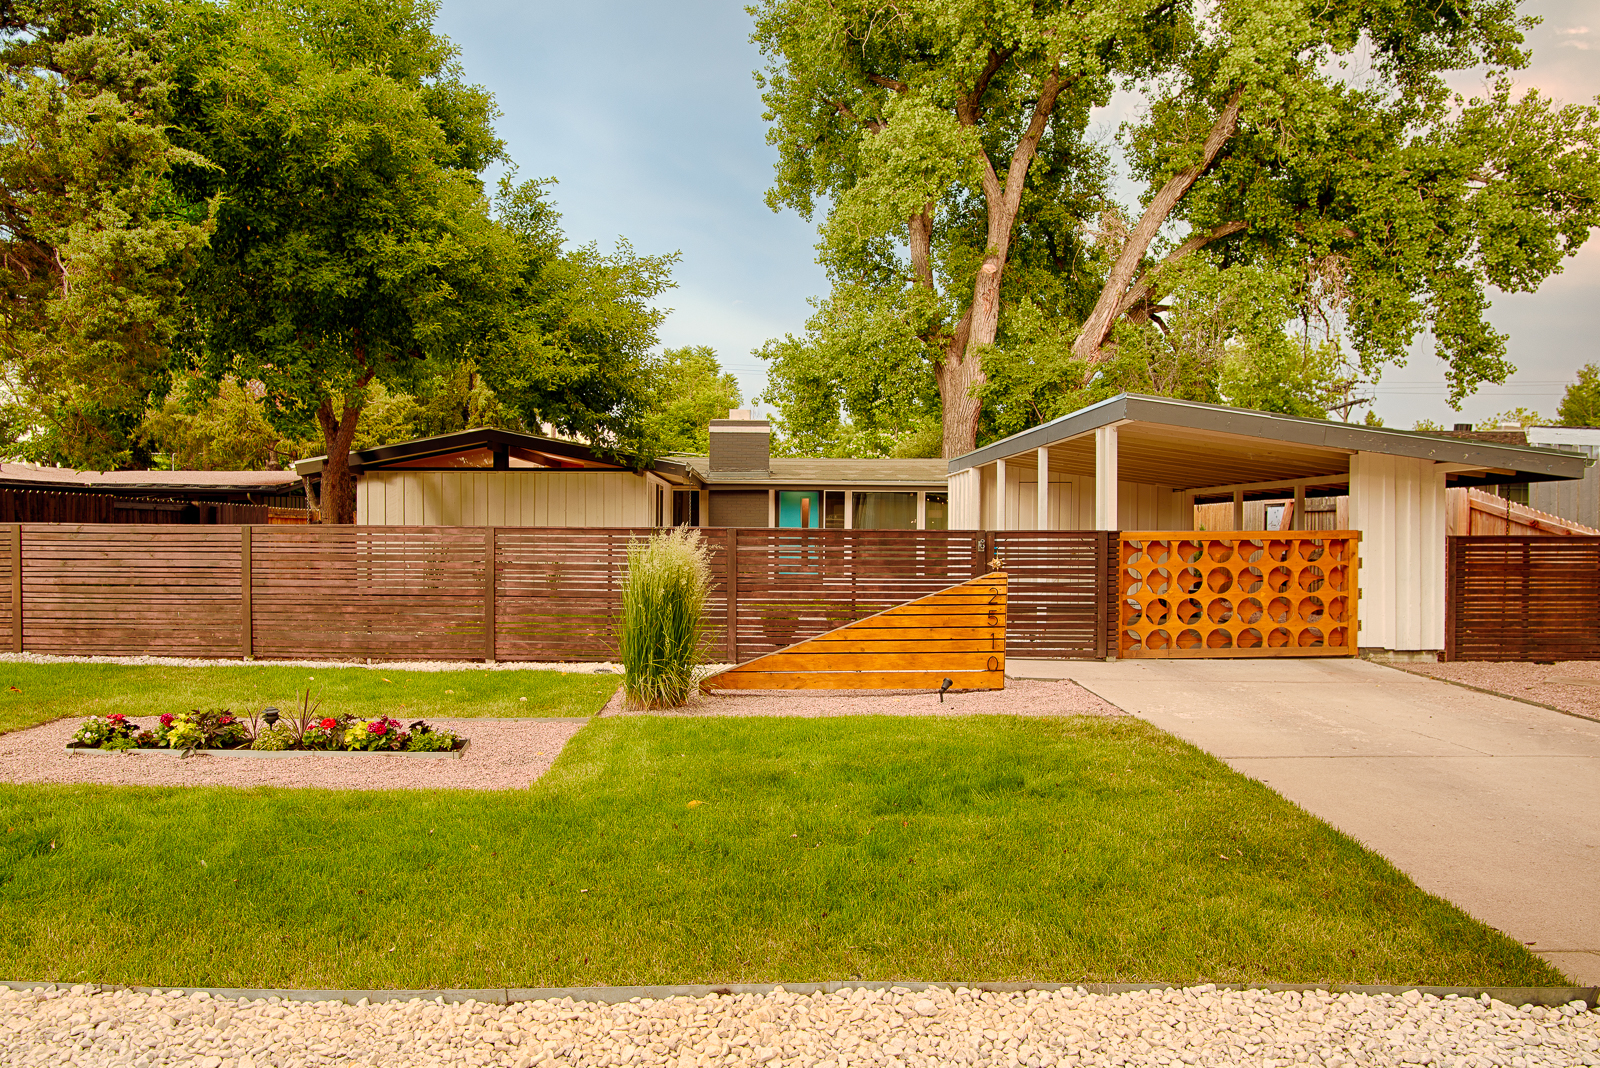 The exterior of a midcentury modern house. There is a wooden fence in front of the house. The house has an ivory facade. There is a green lawn in front.